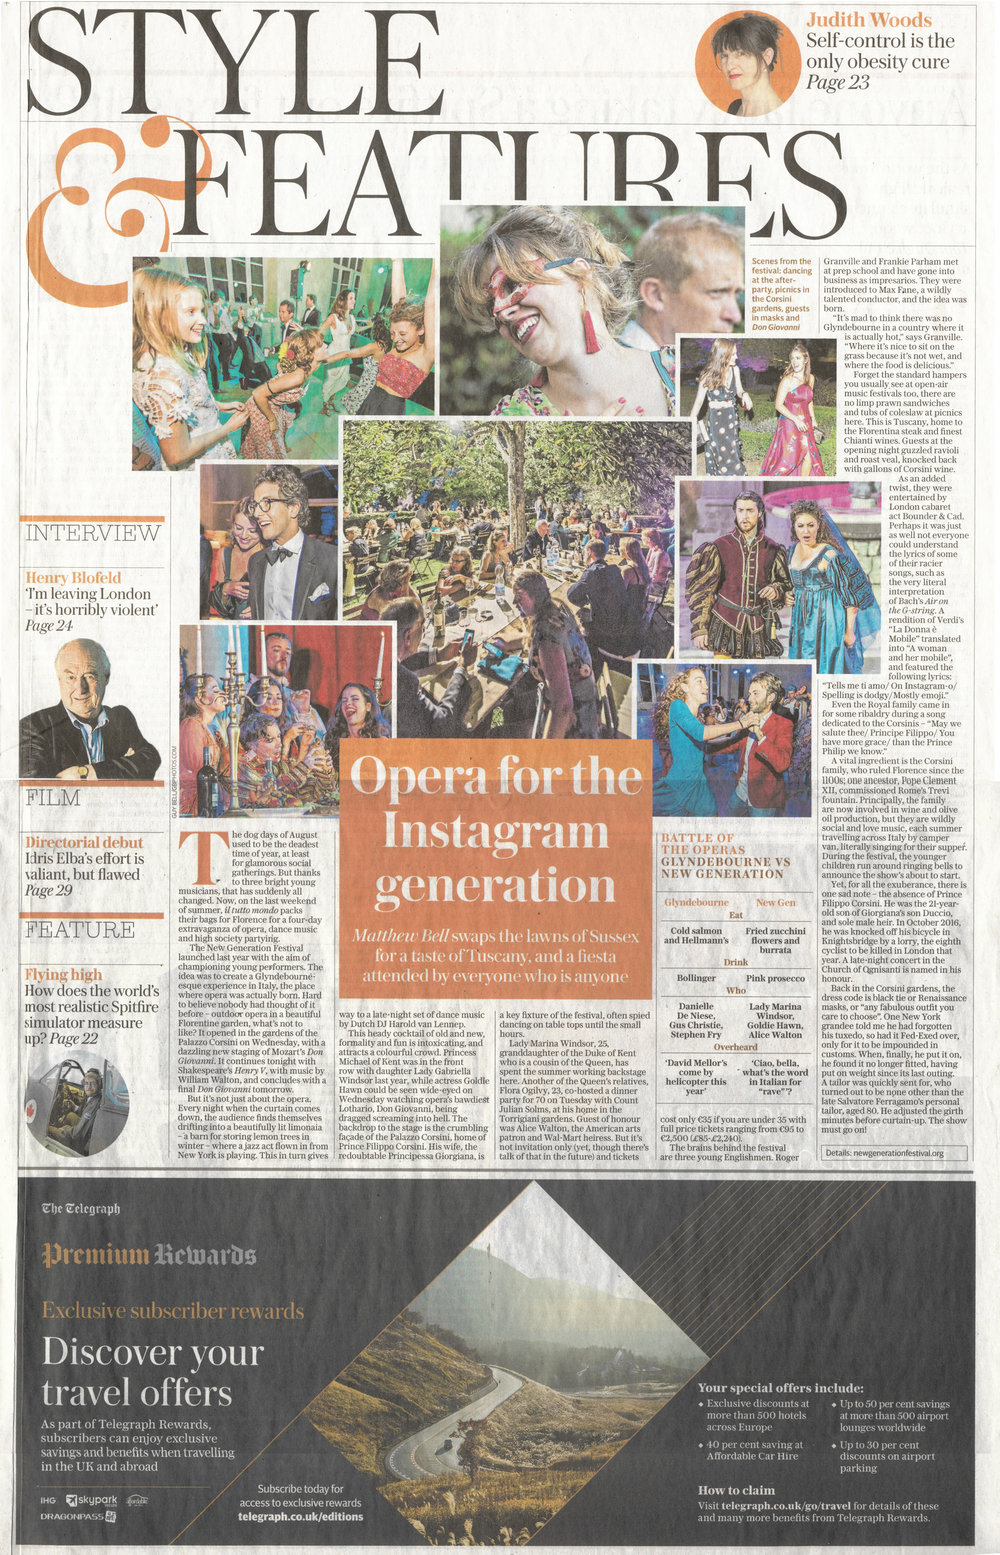 The Daily Telegraph The New Generation Festival.jpg